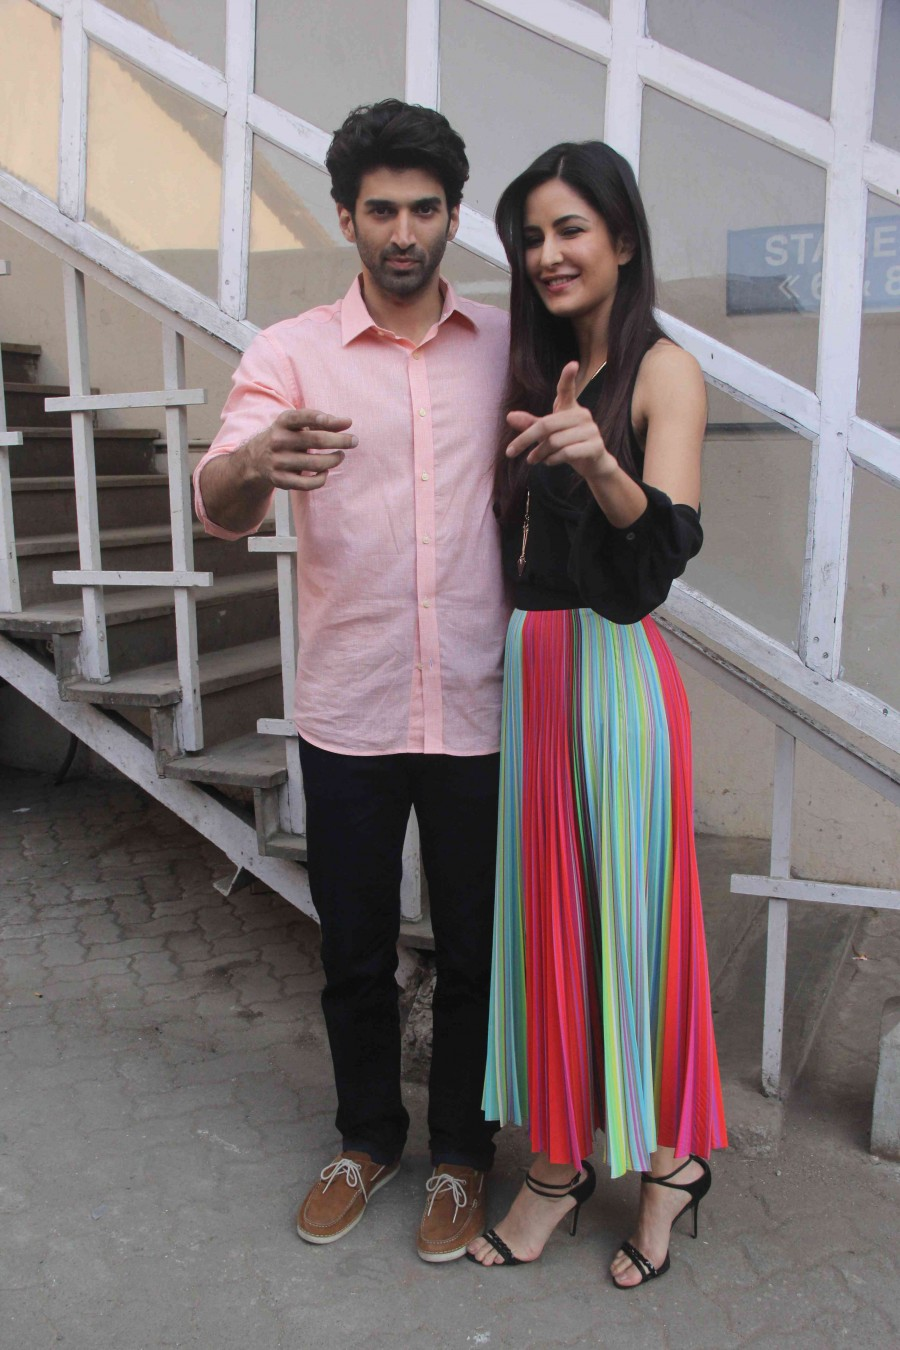 Katrina Kaif,Aditya Roy Kapur,Fitoor movie promotion,Fitoor promotion,Katrina Kaif and Aditya Roy Kapur,Fitoor movie promotion pics,Fitoor movie promotion images,Fitoor movie promotion photos,Fitoor movie promotion stills,Fitoor movie promotion pictures,b